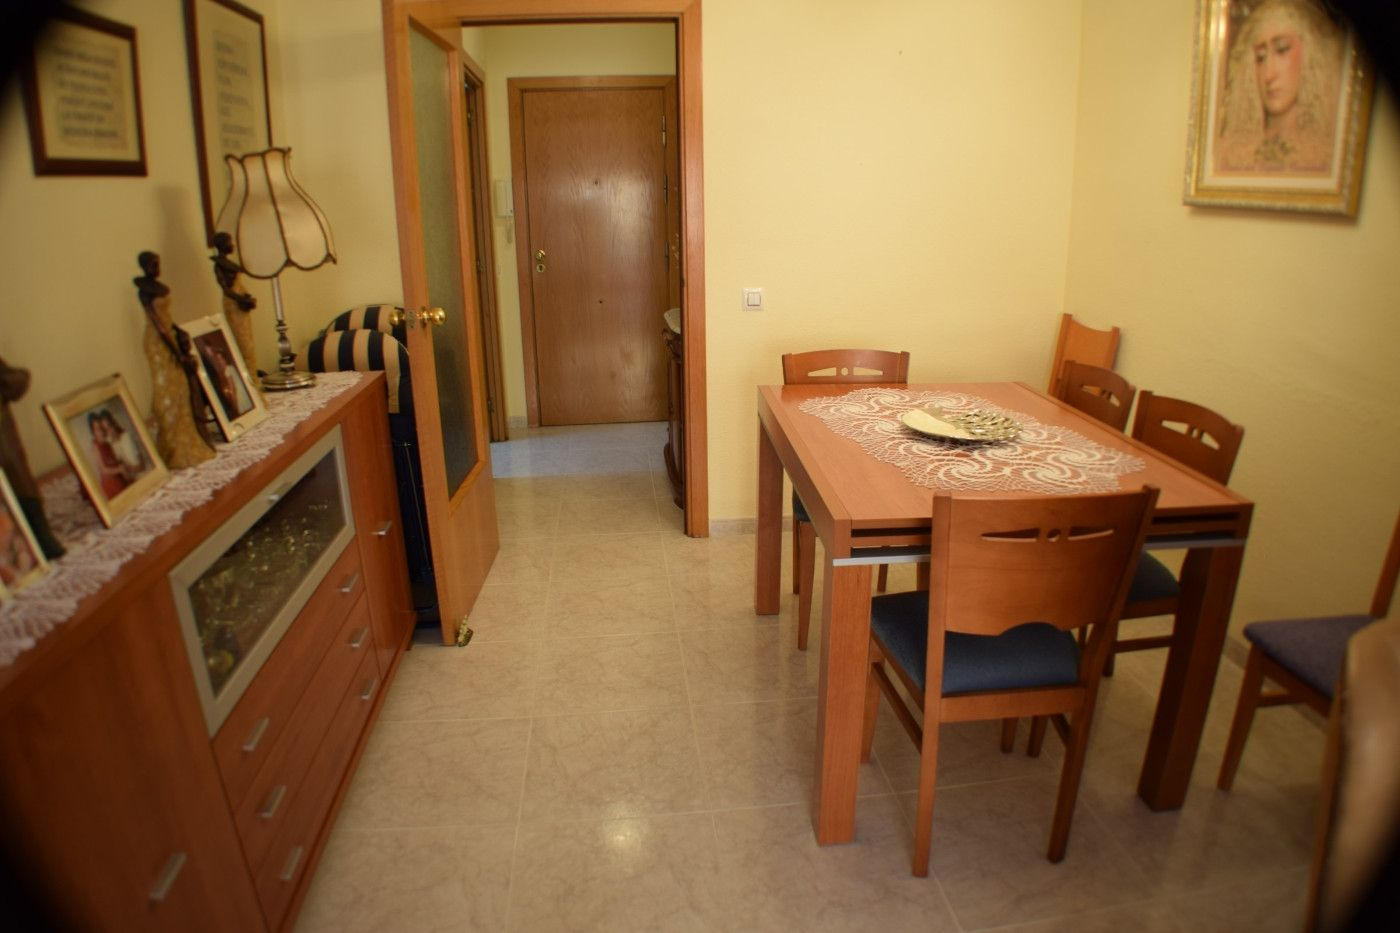 Appartement à Centre. Opiso centrico de 3 dormitorios